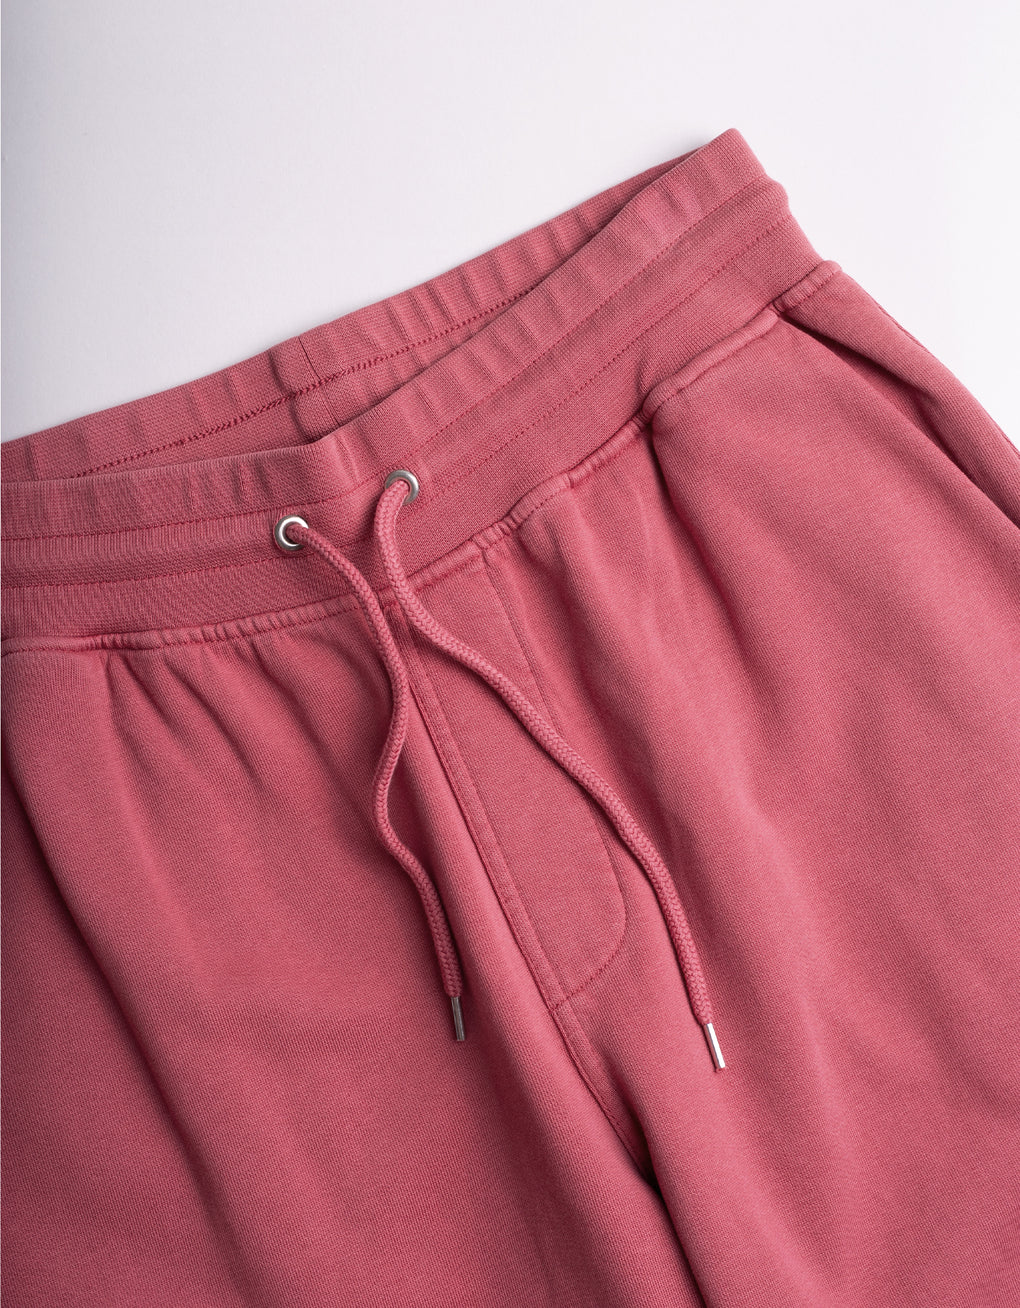 Colorful Standard Classic Organic Sweatshorts Shorts Raspberry Pink